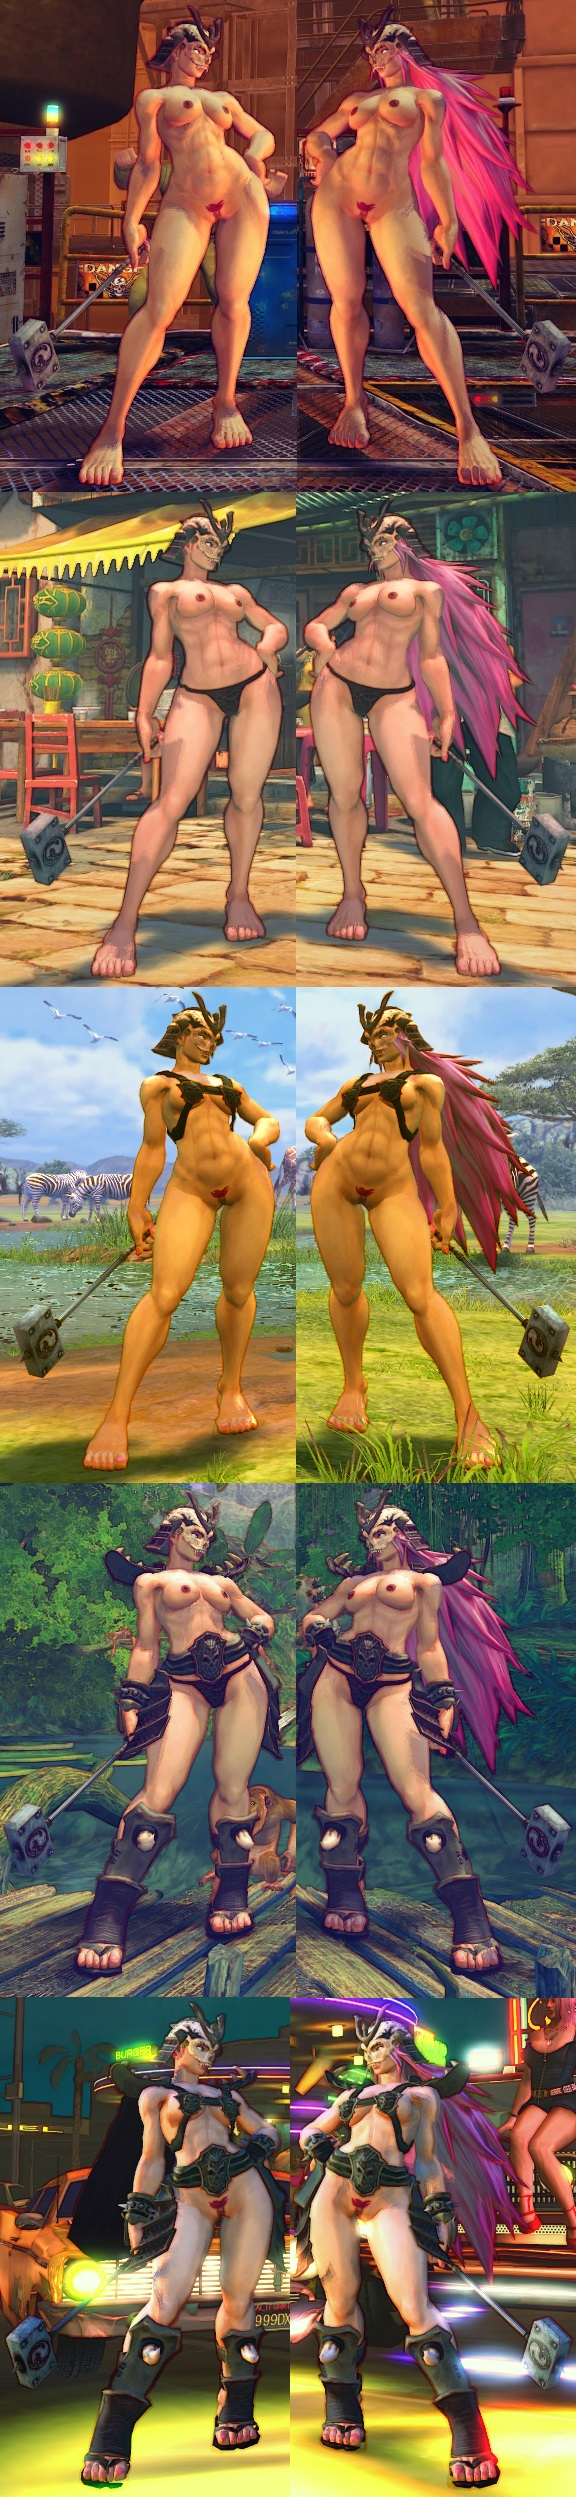 Street fighters nude hentia image